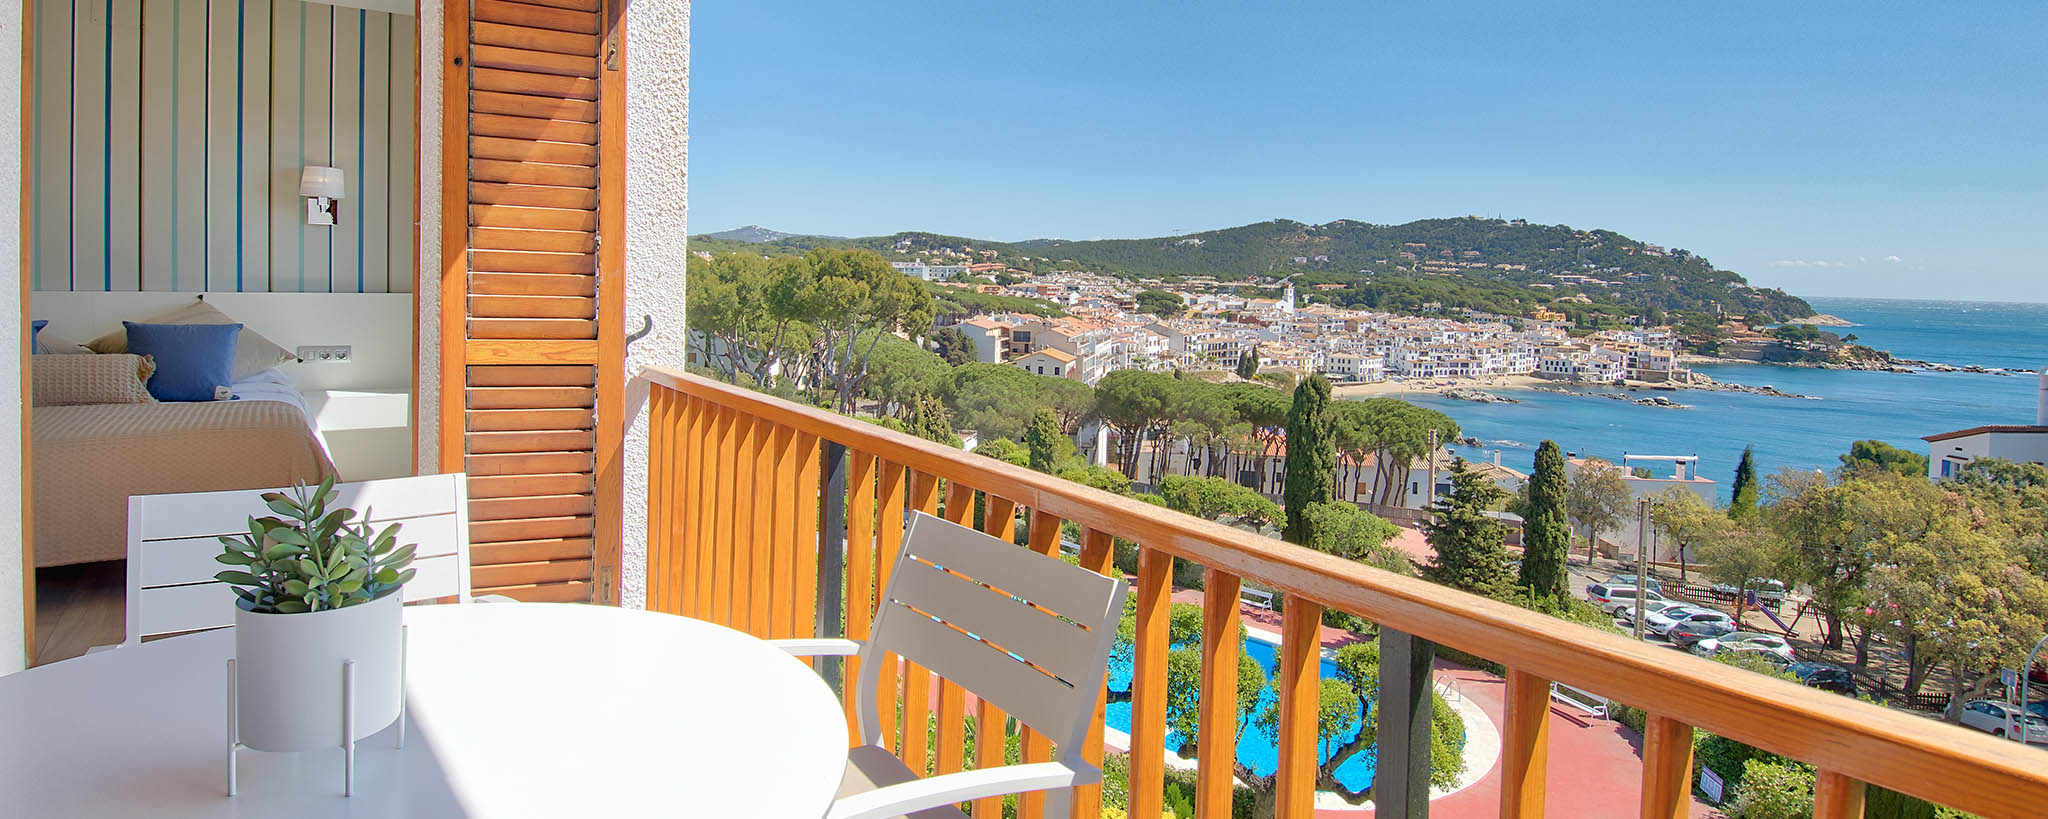 apartment rentals on the Costa Brava